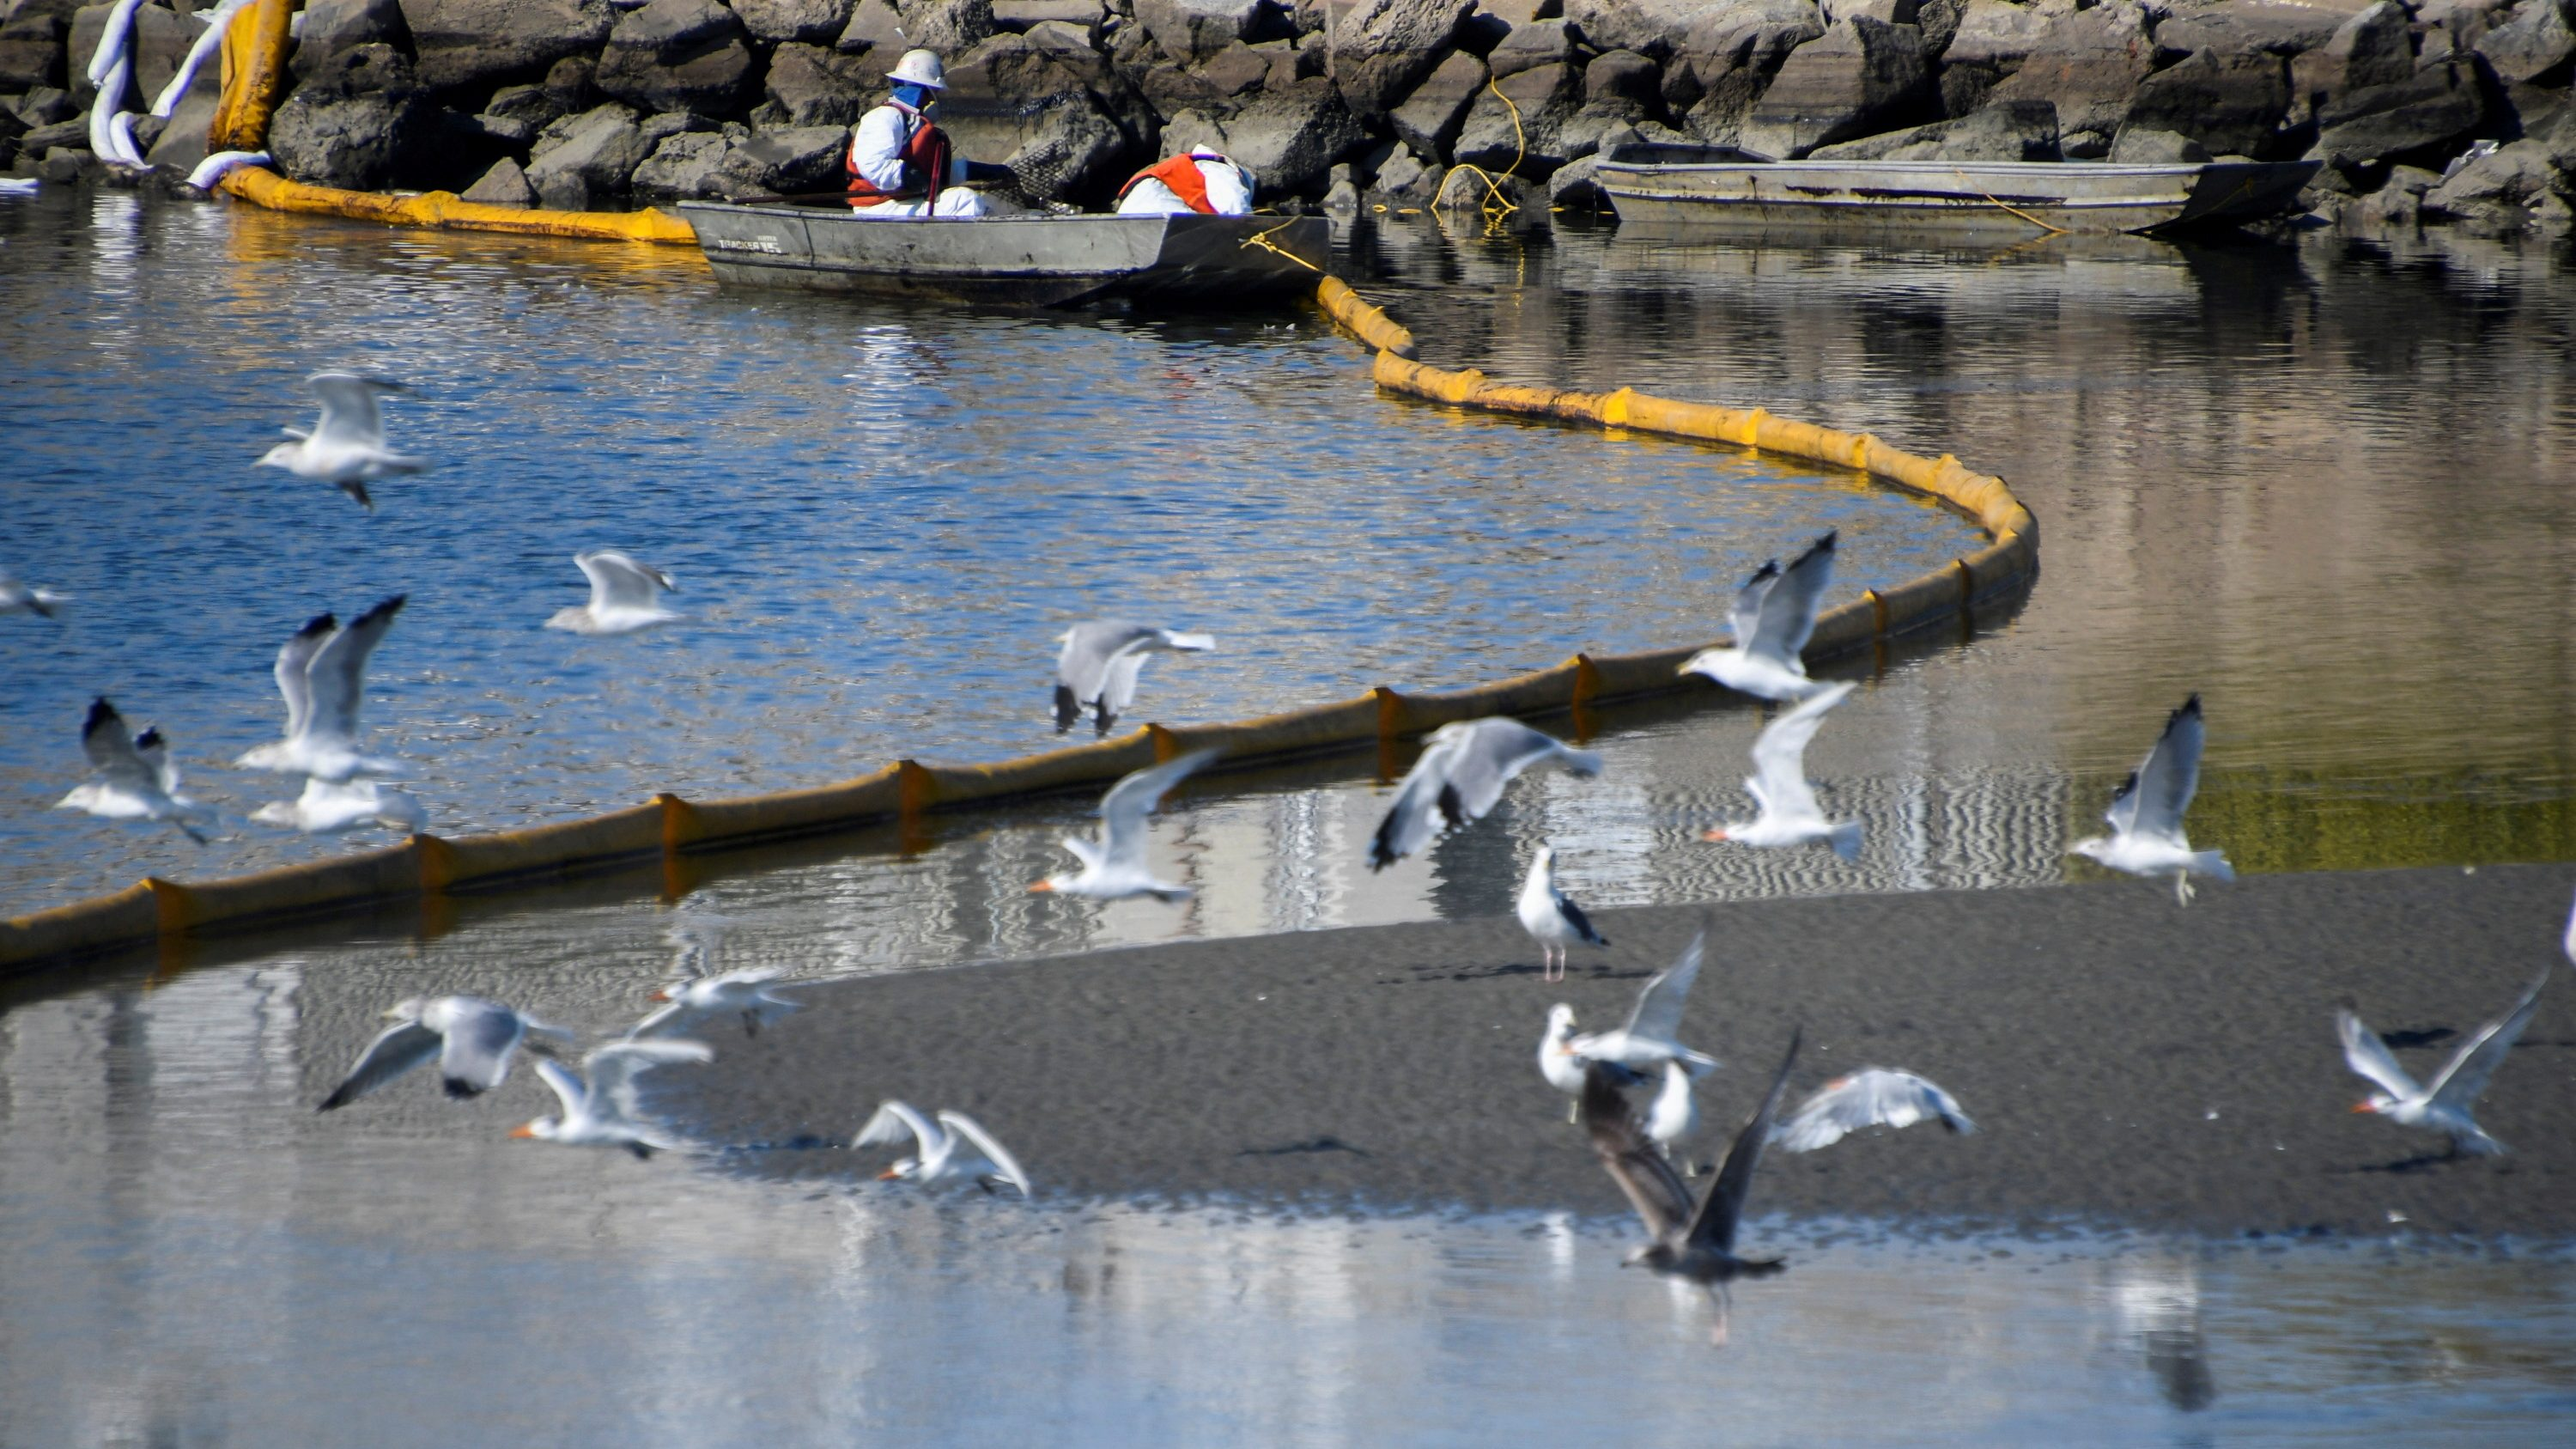 A clean-up team works on clearing the oil slicks at the Talbert Channel after a major oil spill off the coast of California has come ashore in Huntington Beach, California, U.S.